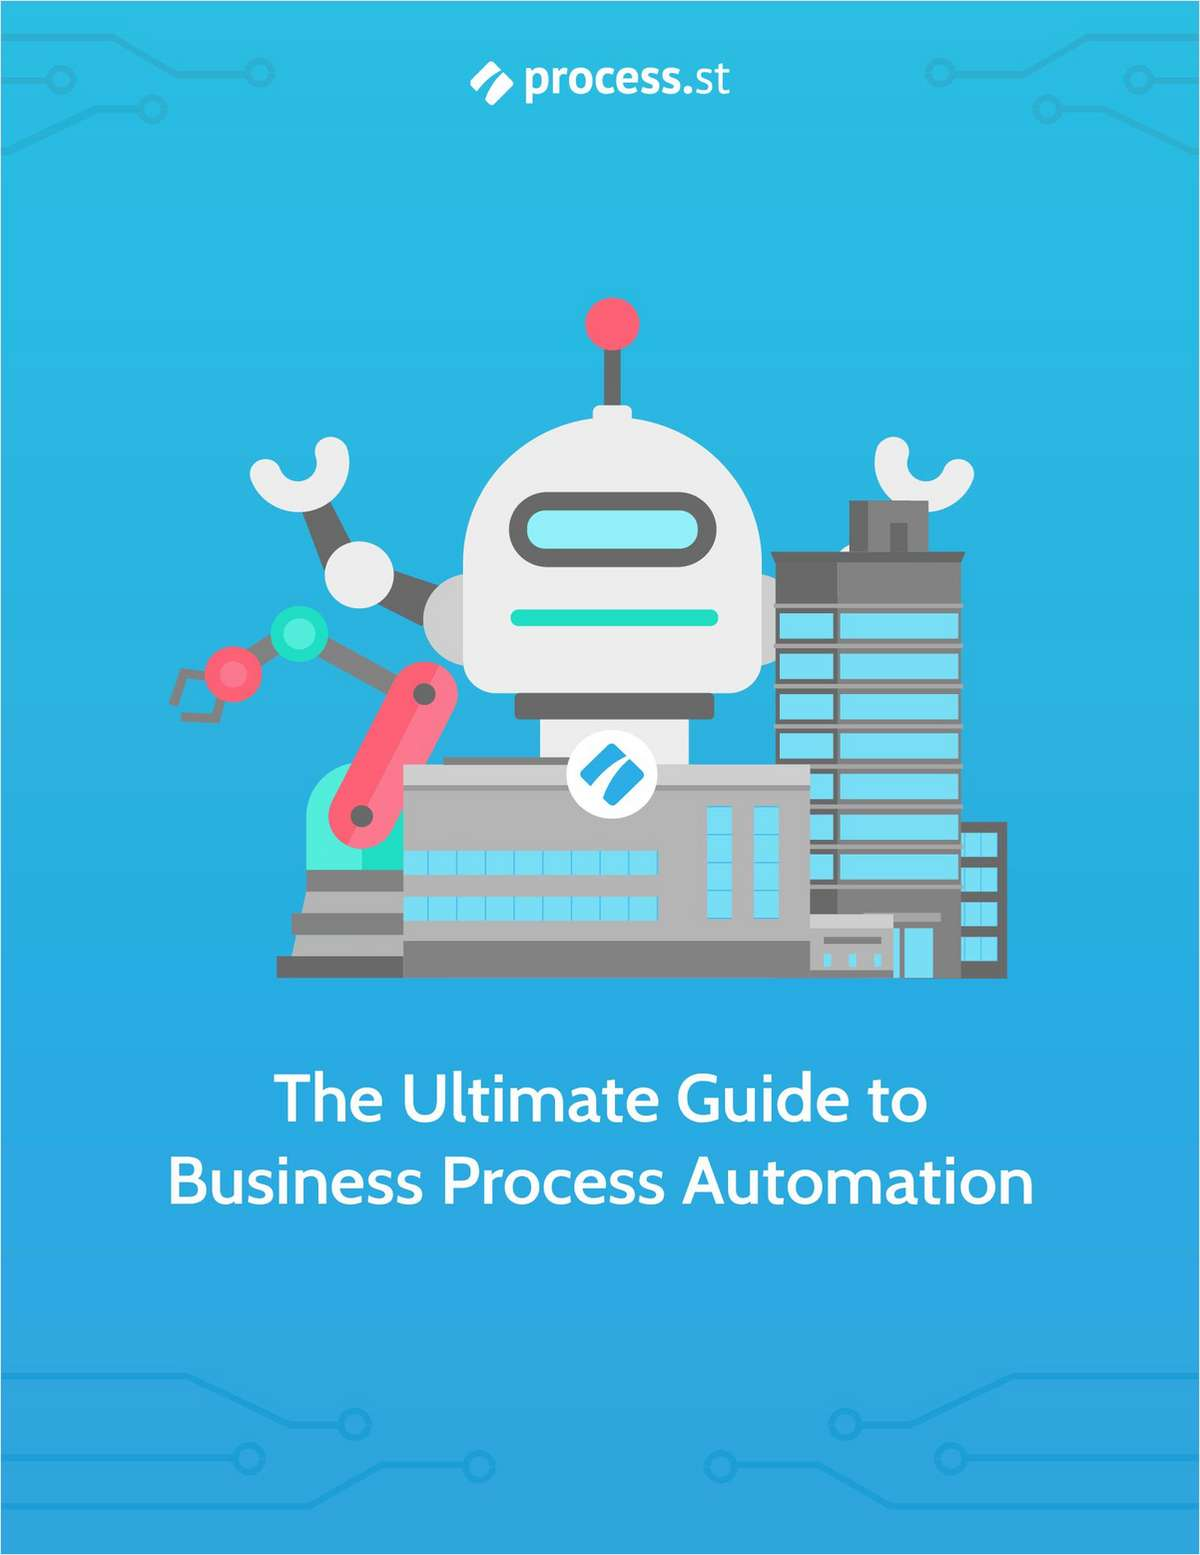 The Ultimate Guide to Business Process Automation